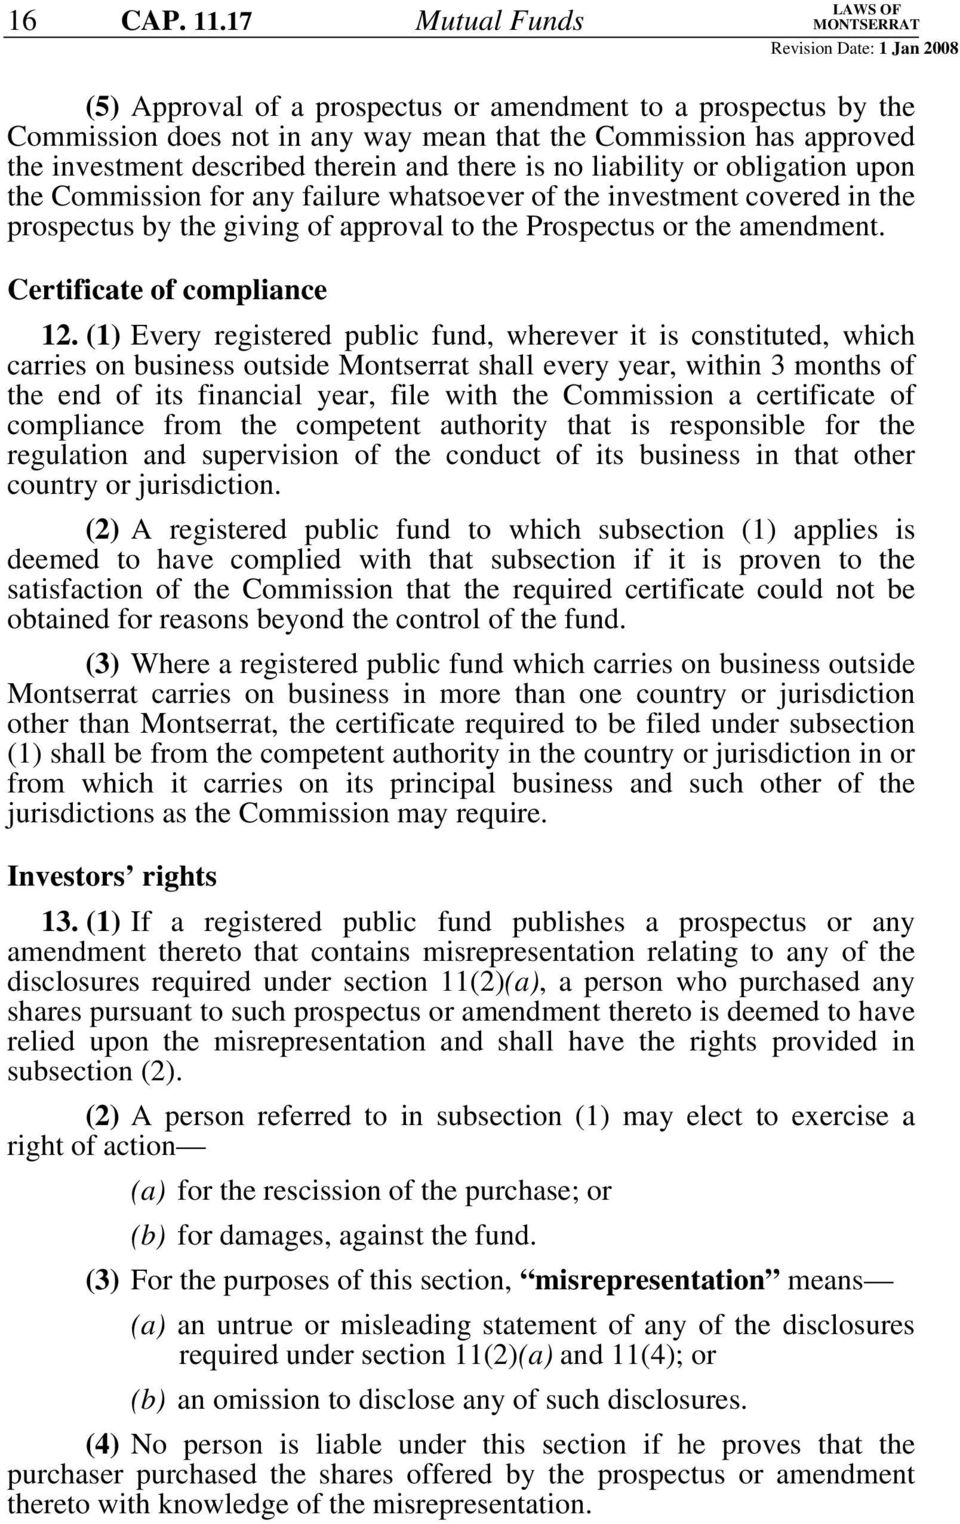 there is no liability or obligation upon the Commission for any failure whatsoever of the investment covered in the prospectus by the giving of approval to the Prospectus or the amendment.